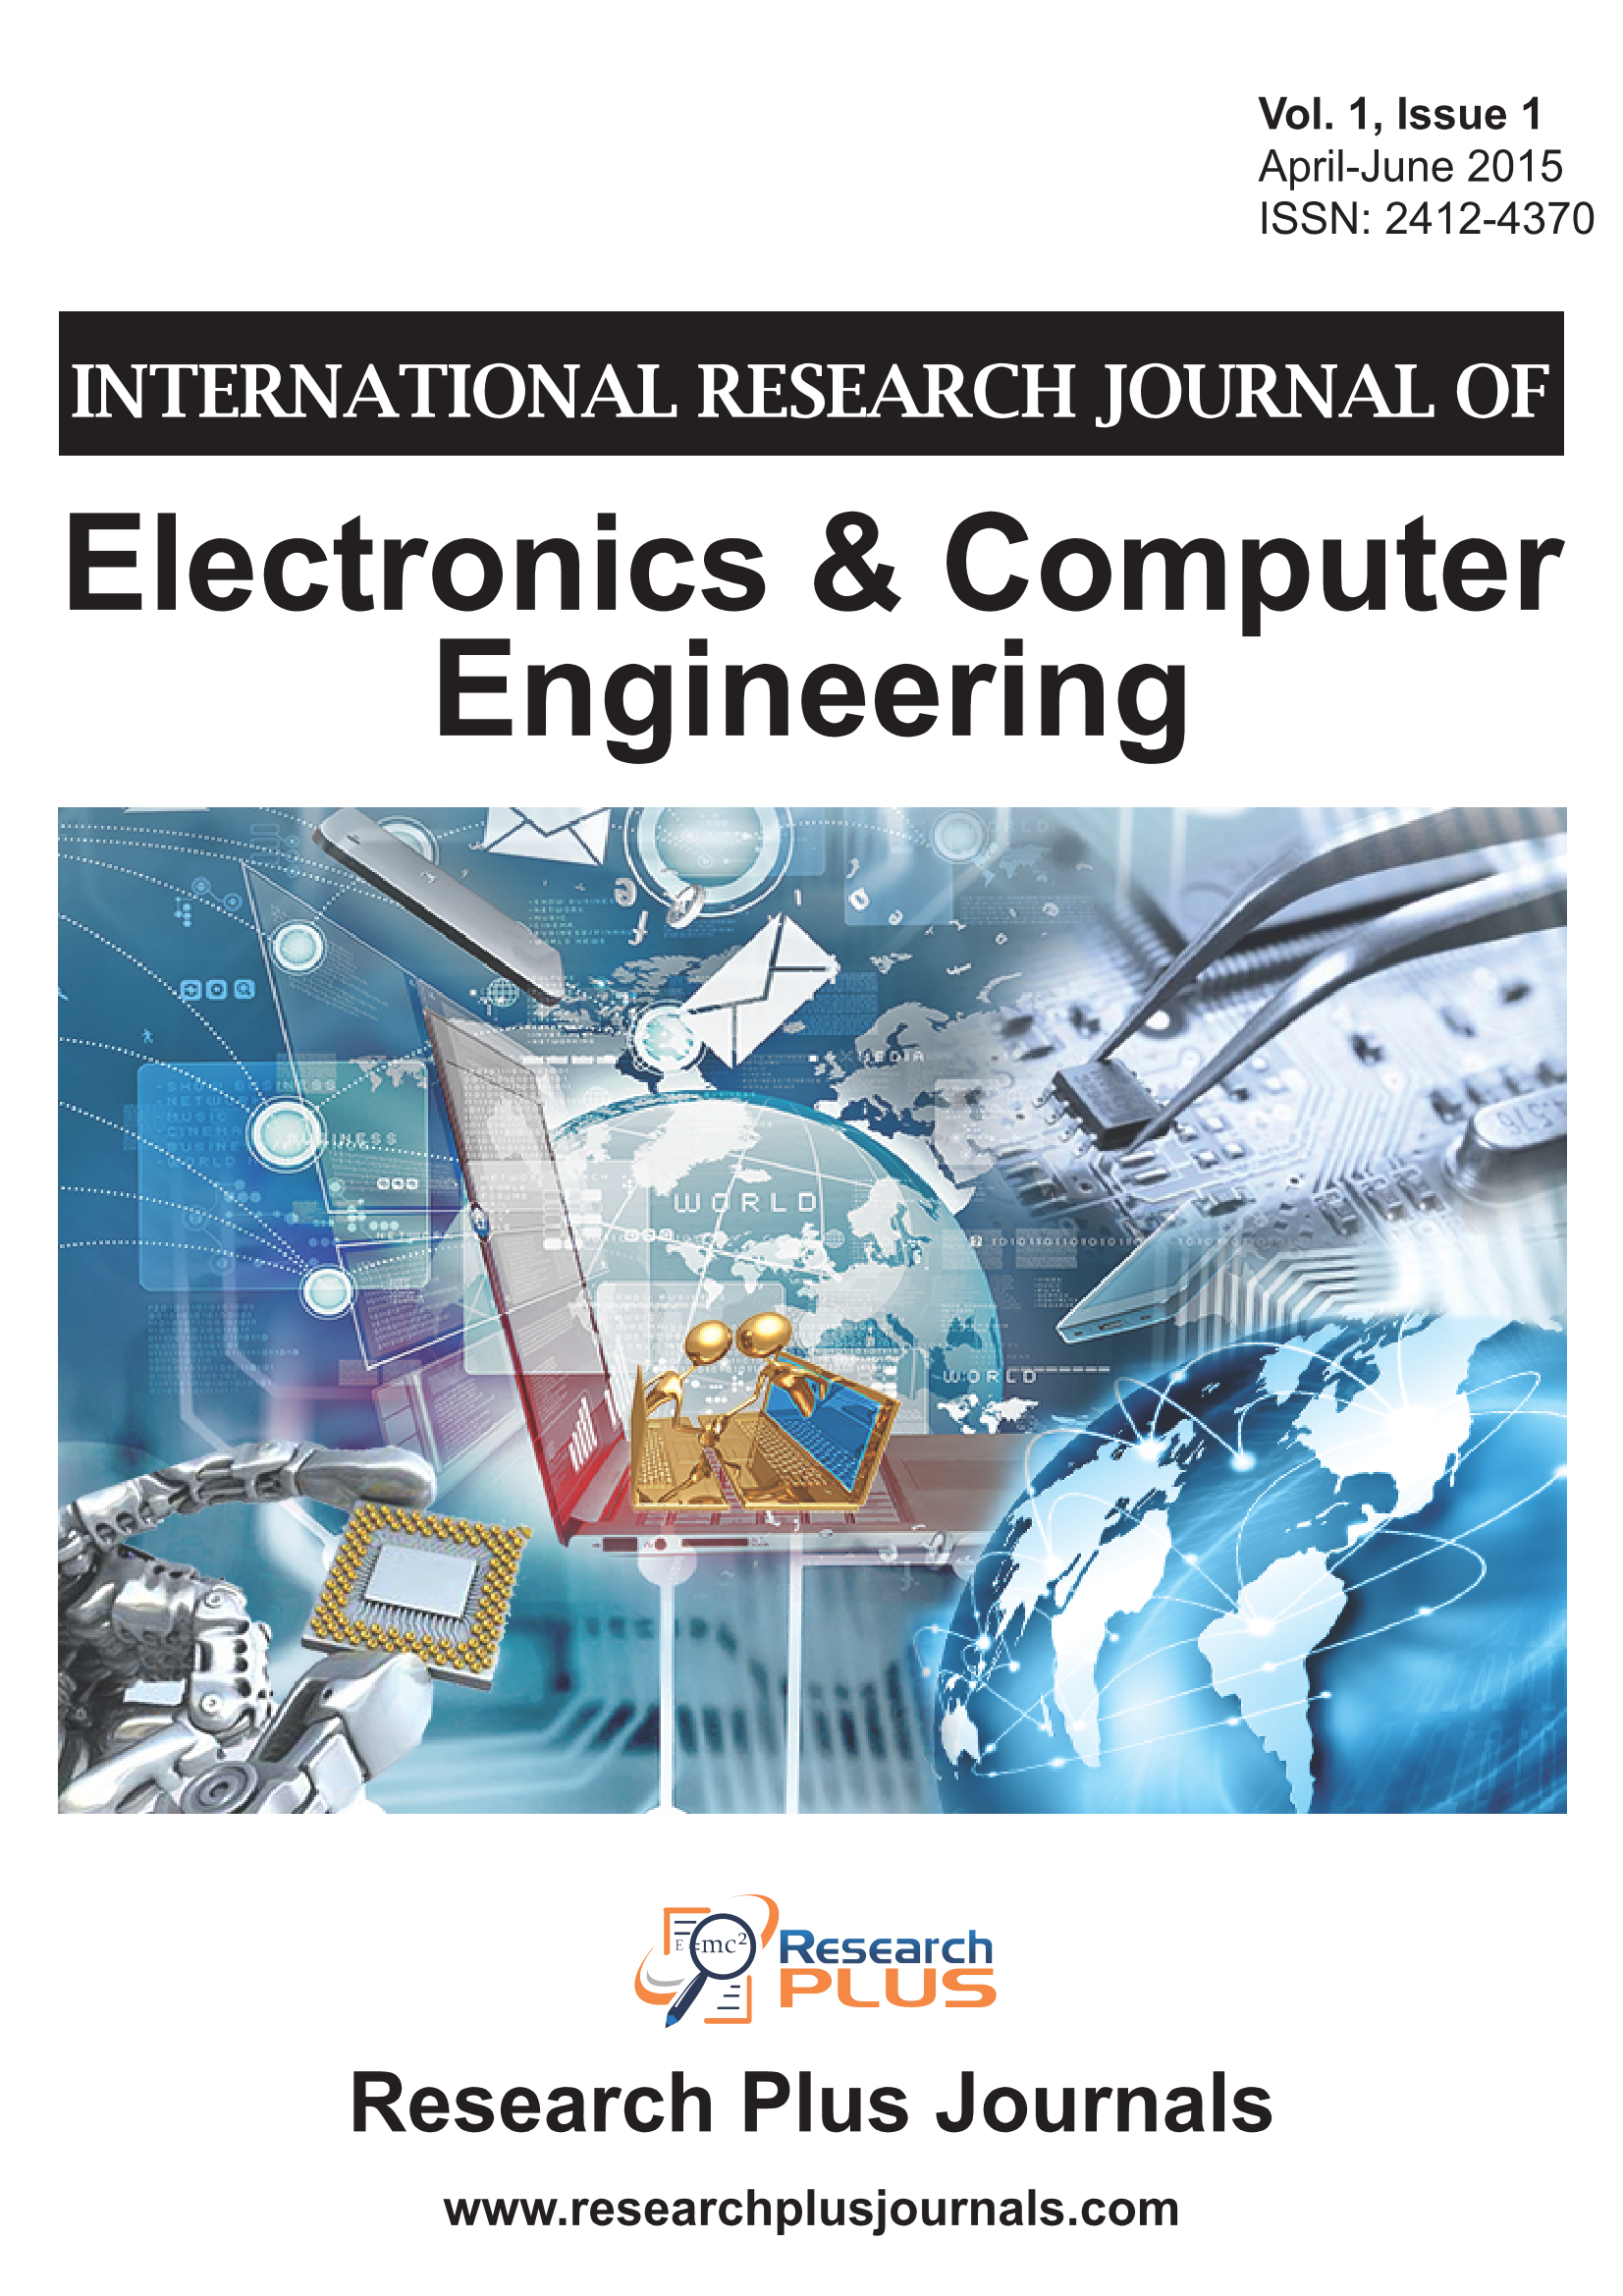 Volume 1. Issue 1, International Research Journal of Electronics and Computer Engineering